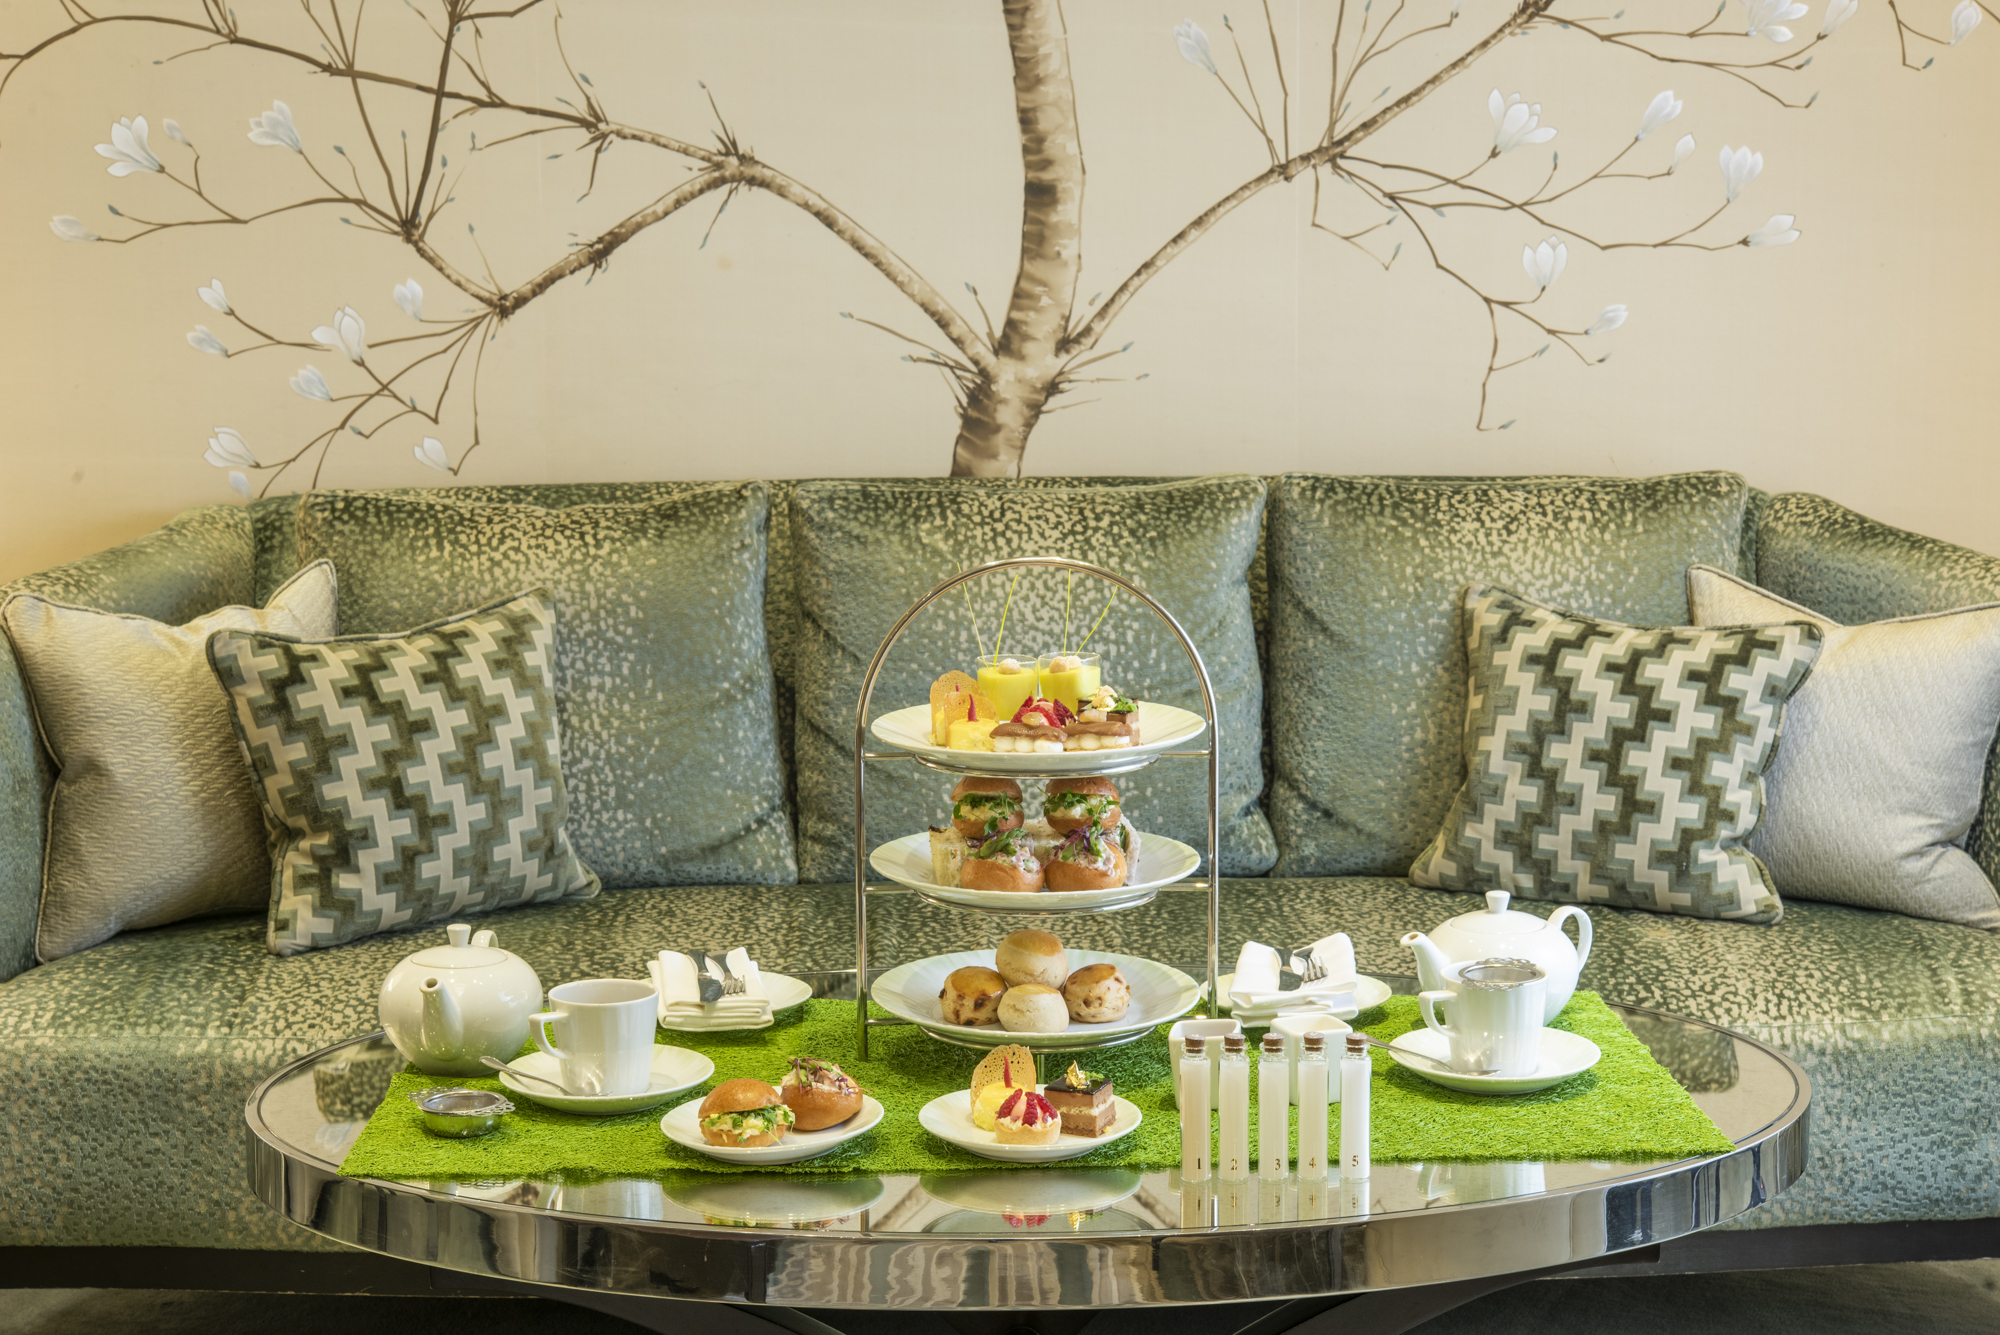 Image of Afternoon Tea at the Knightsbridge Lounge